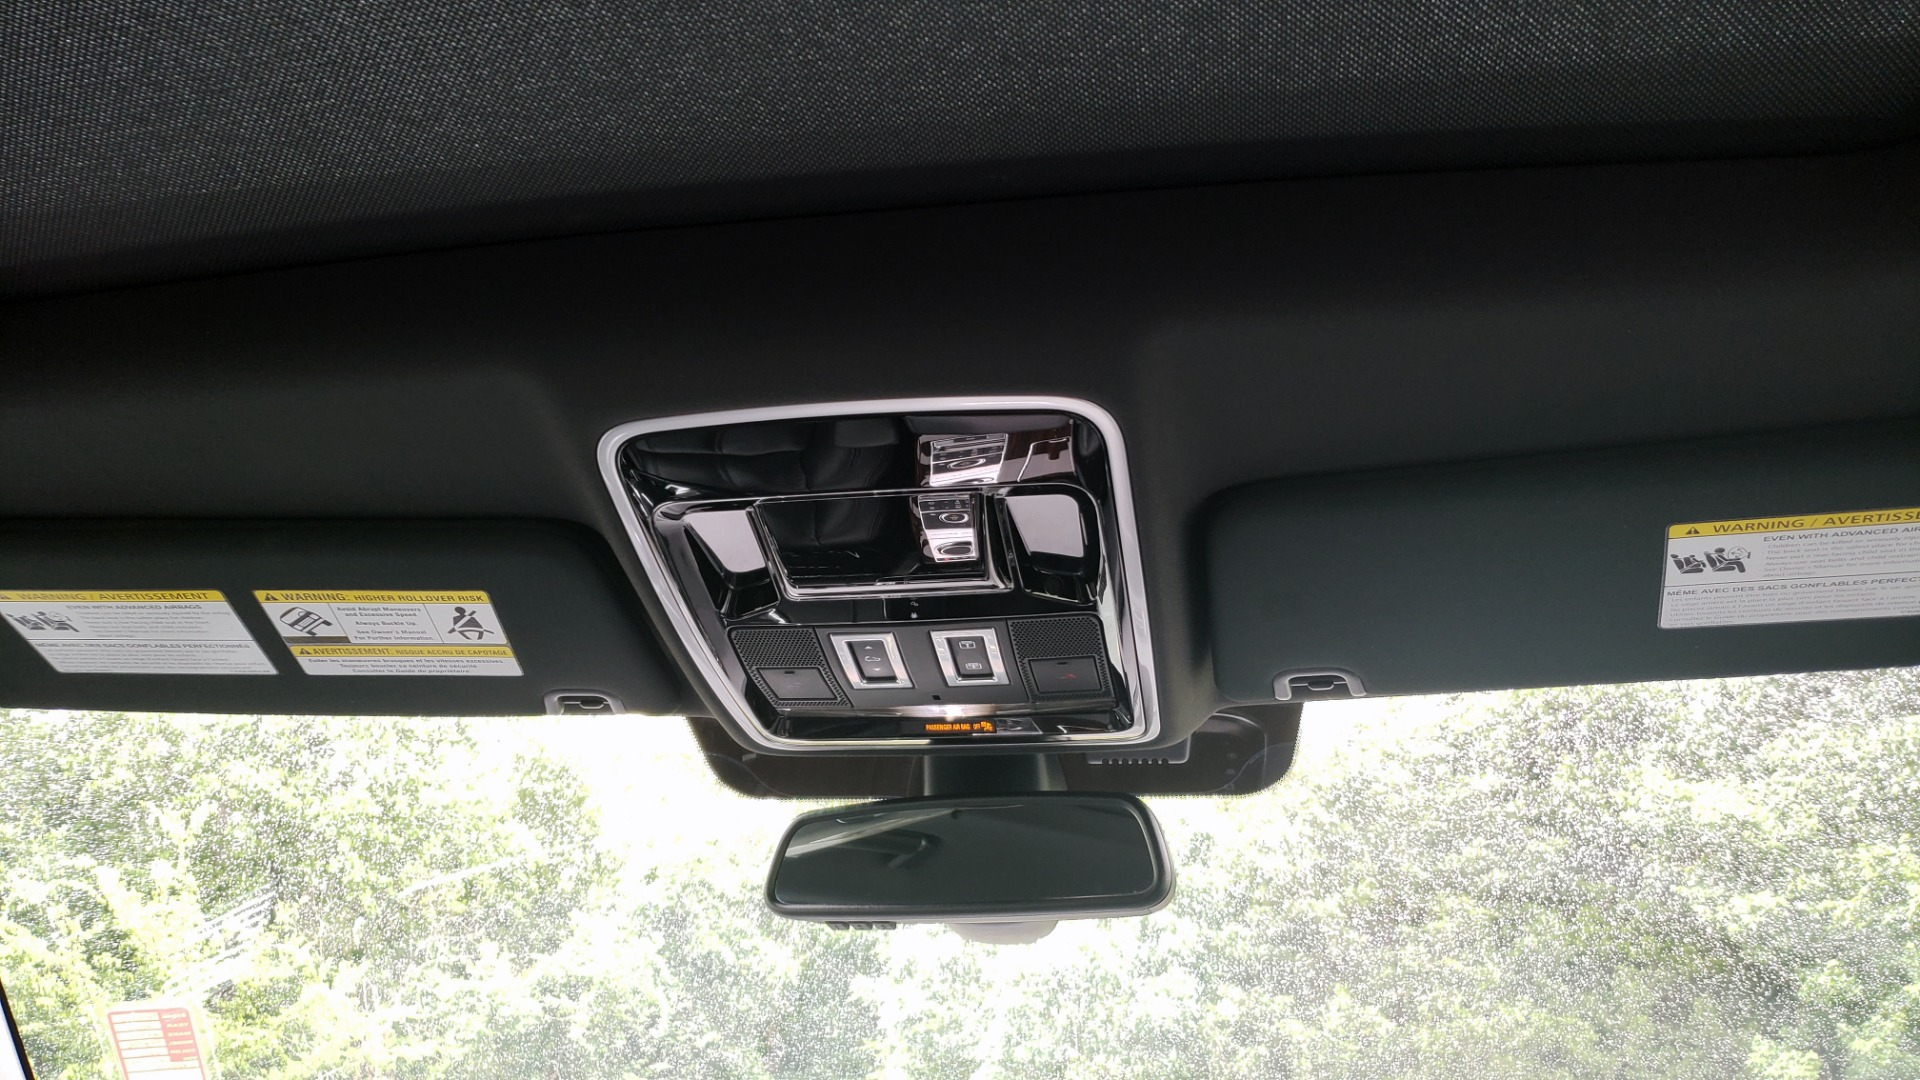 Used 2016 Land Rover Range Rover HSE 3.0L SC V6 / NAV / PANO-ROOF / VENT SEATS / REARVIEW / BLIND SPOT for sale Sold at Formula Imports in Charlotte NC 28227 83